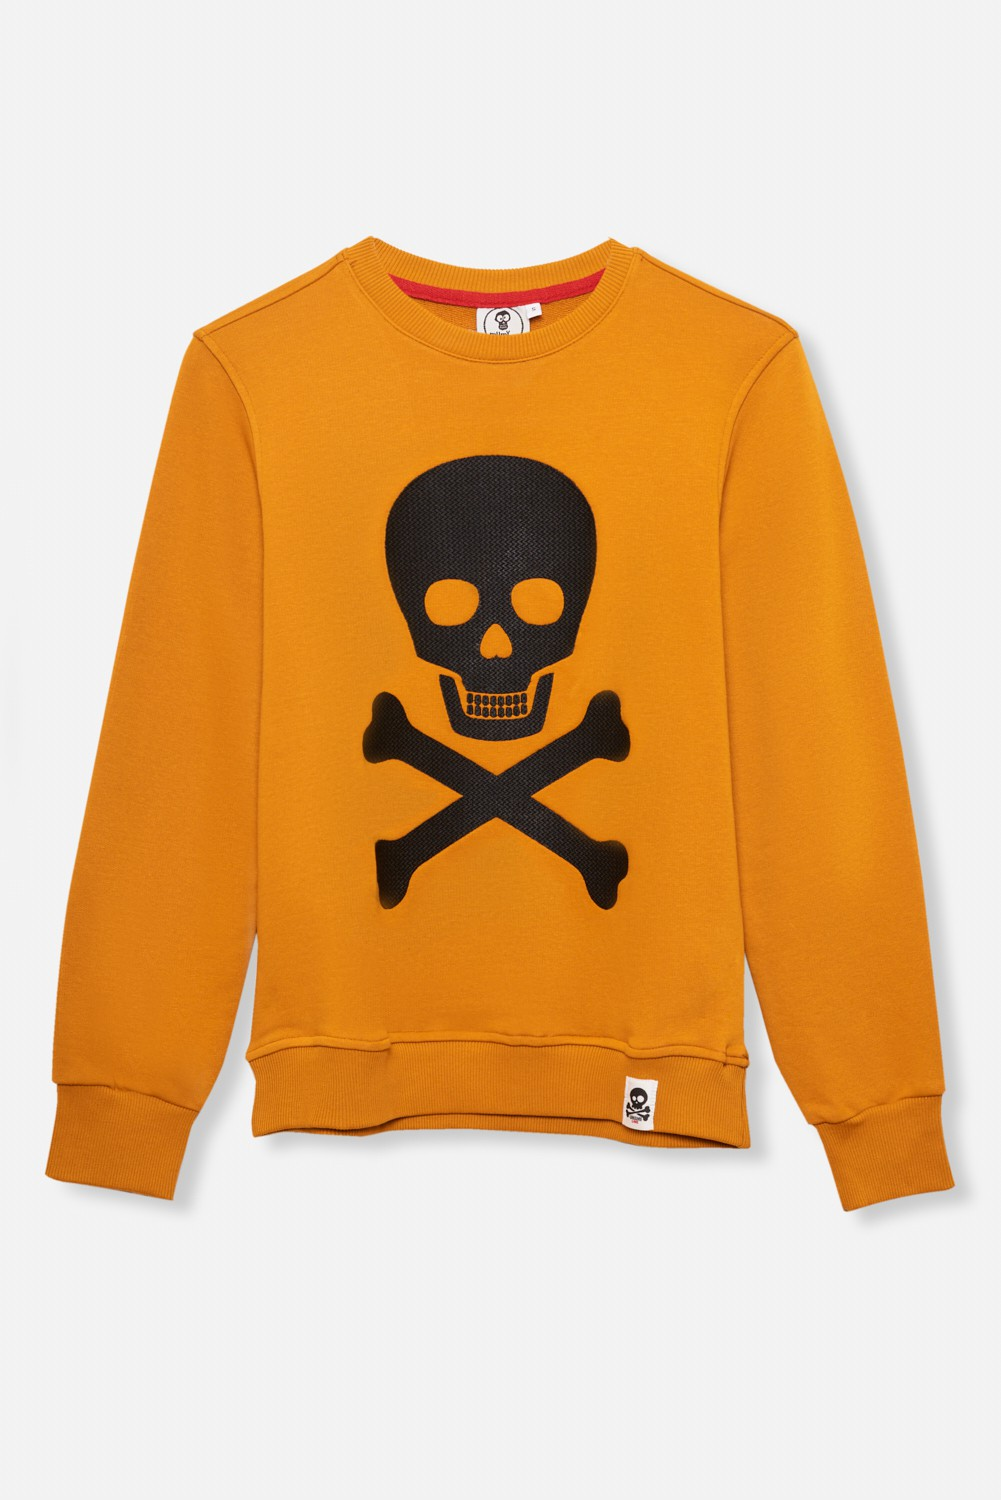 ADULT´S EMBROIDERED JERSEY UMAMI LINE SKULL AND BONES